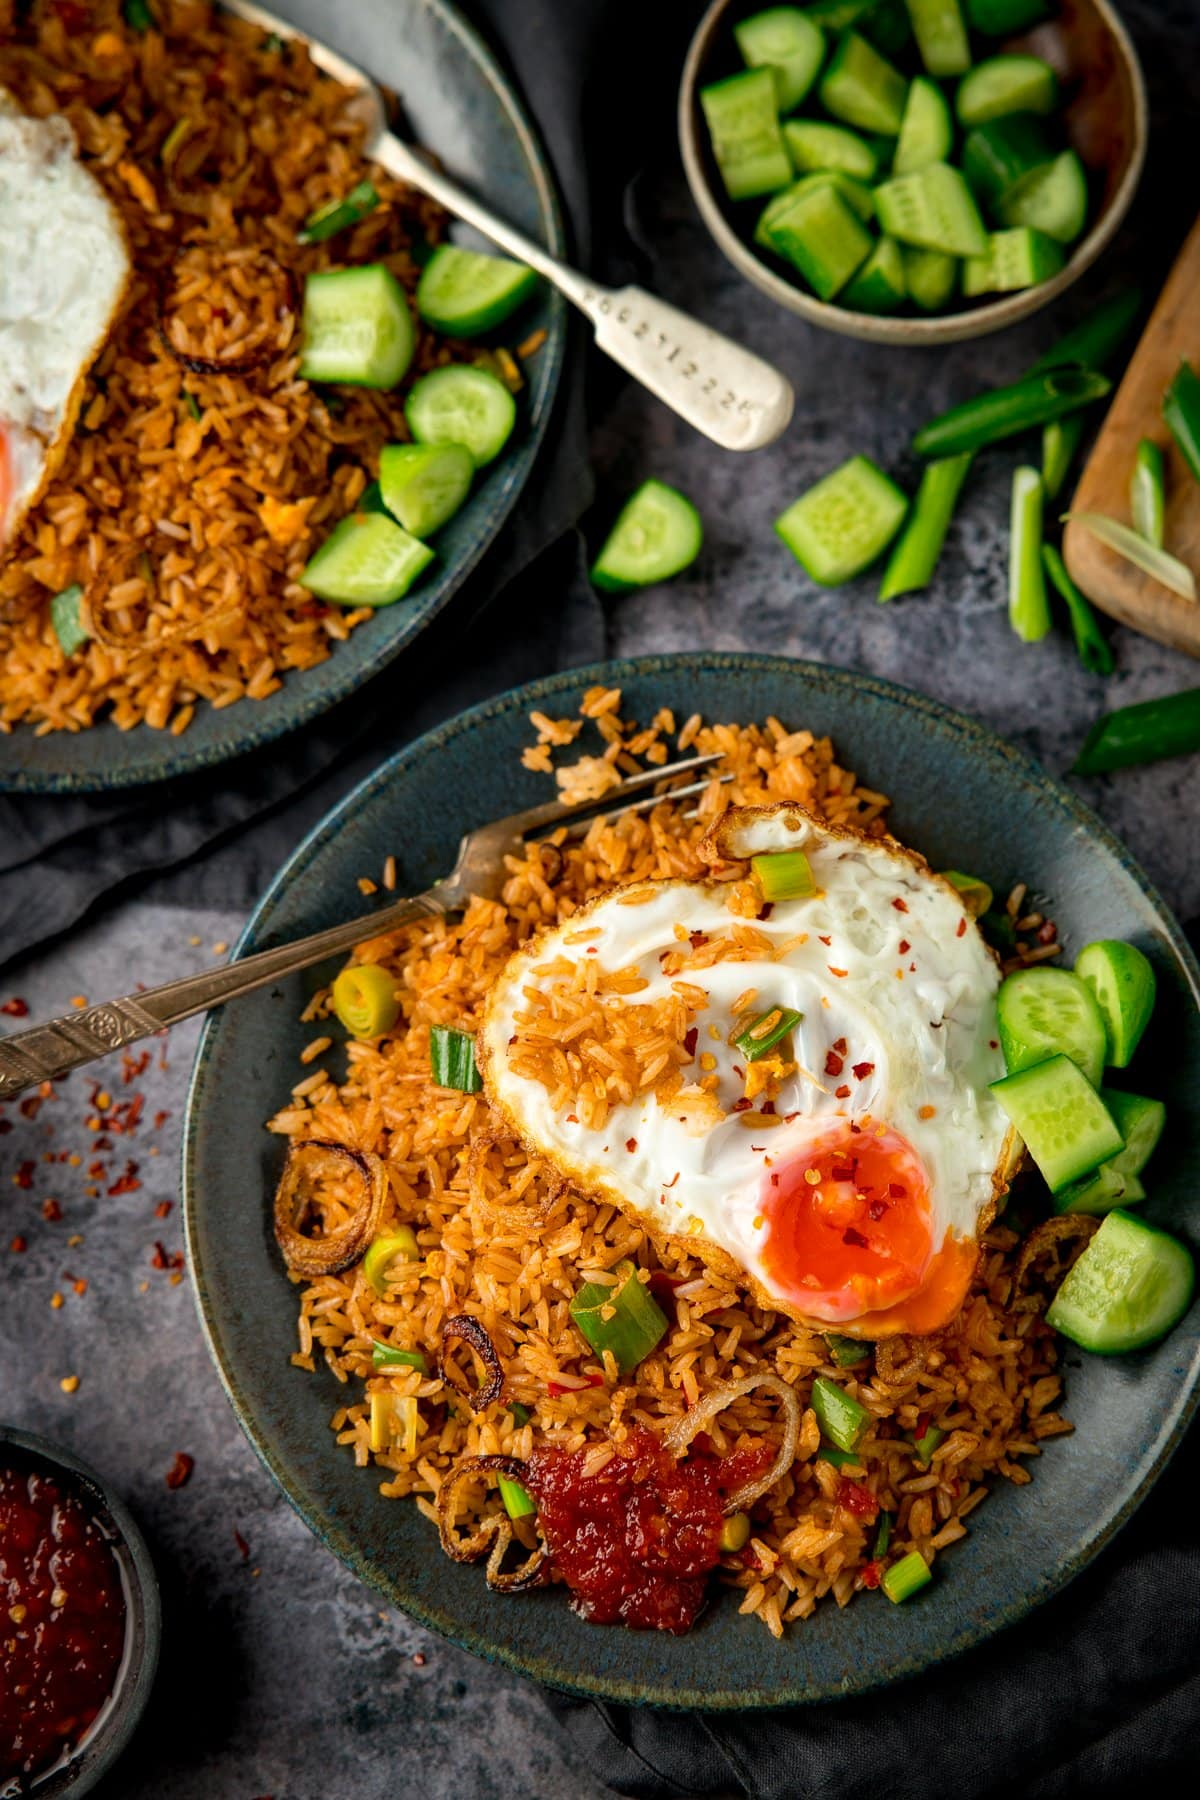 Overhead image of nasi goreng rice on a plate, topped with a fried egg